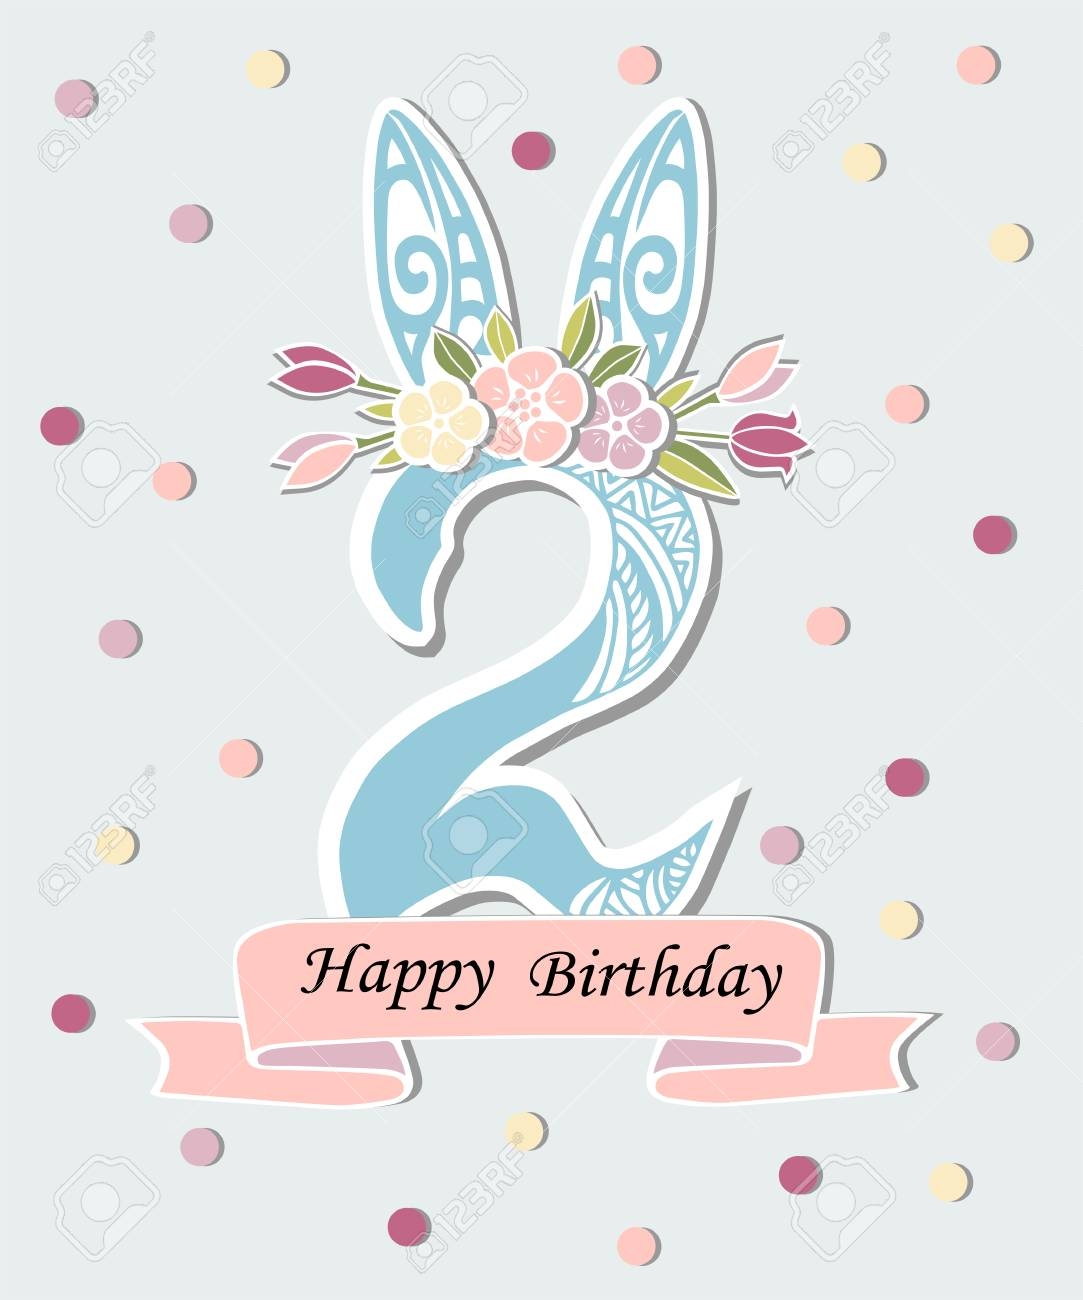 Vector Illustration With Number Two Bunny Ears And Floral Wreath